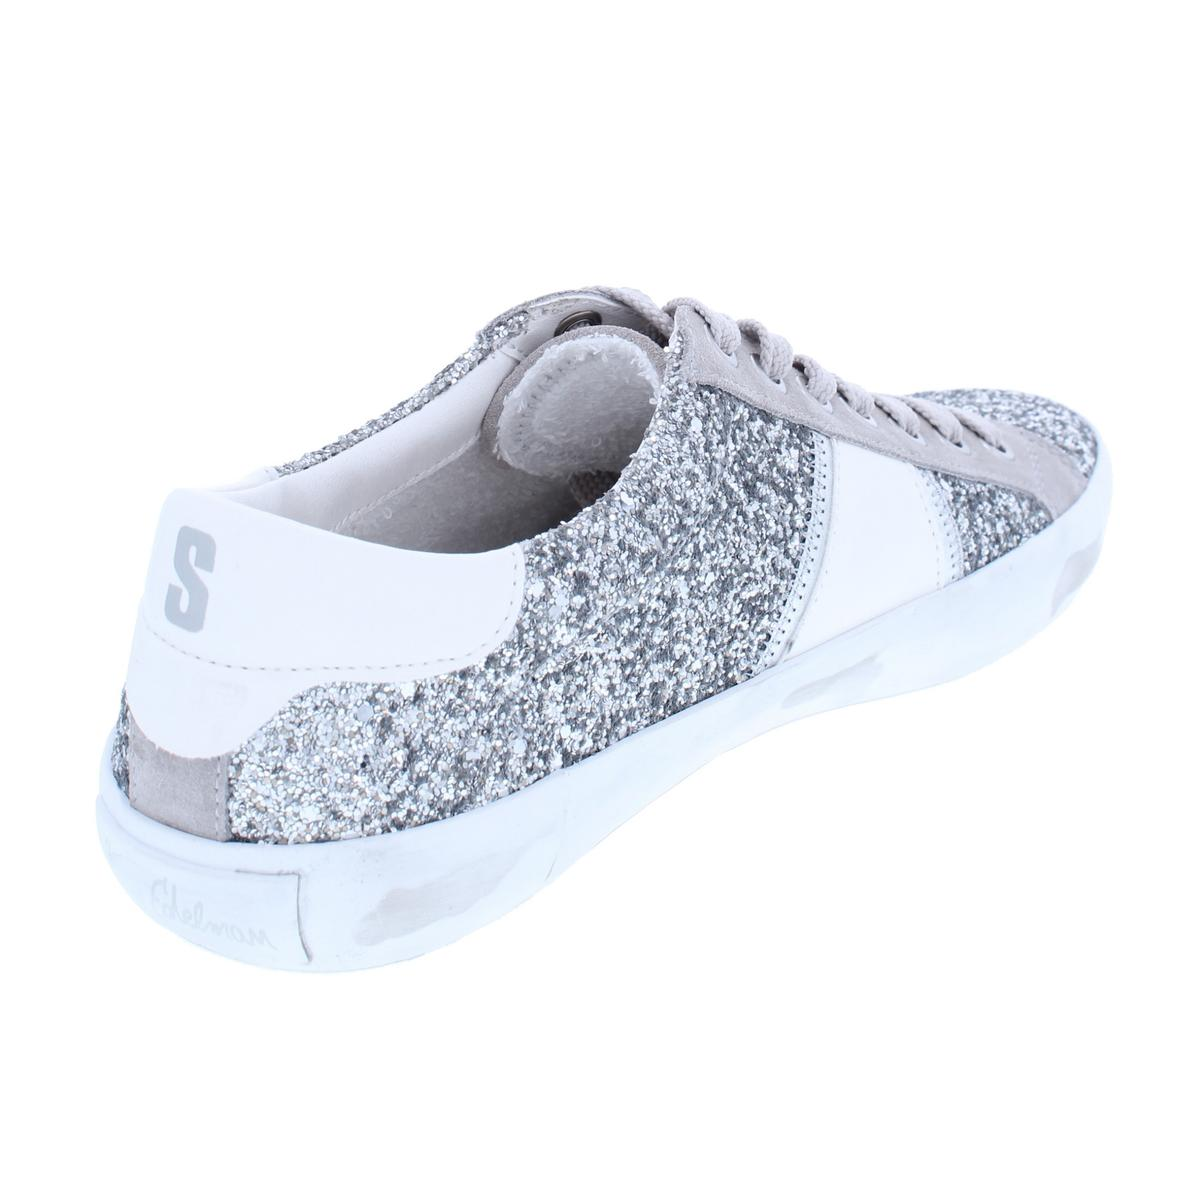 32fc2d97c9213 Sam Edelman Womens Baylee Glitter Low Fashion Sneakers Shoes BHFO ...